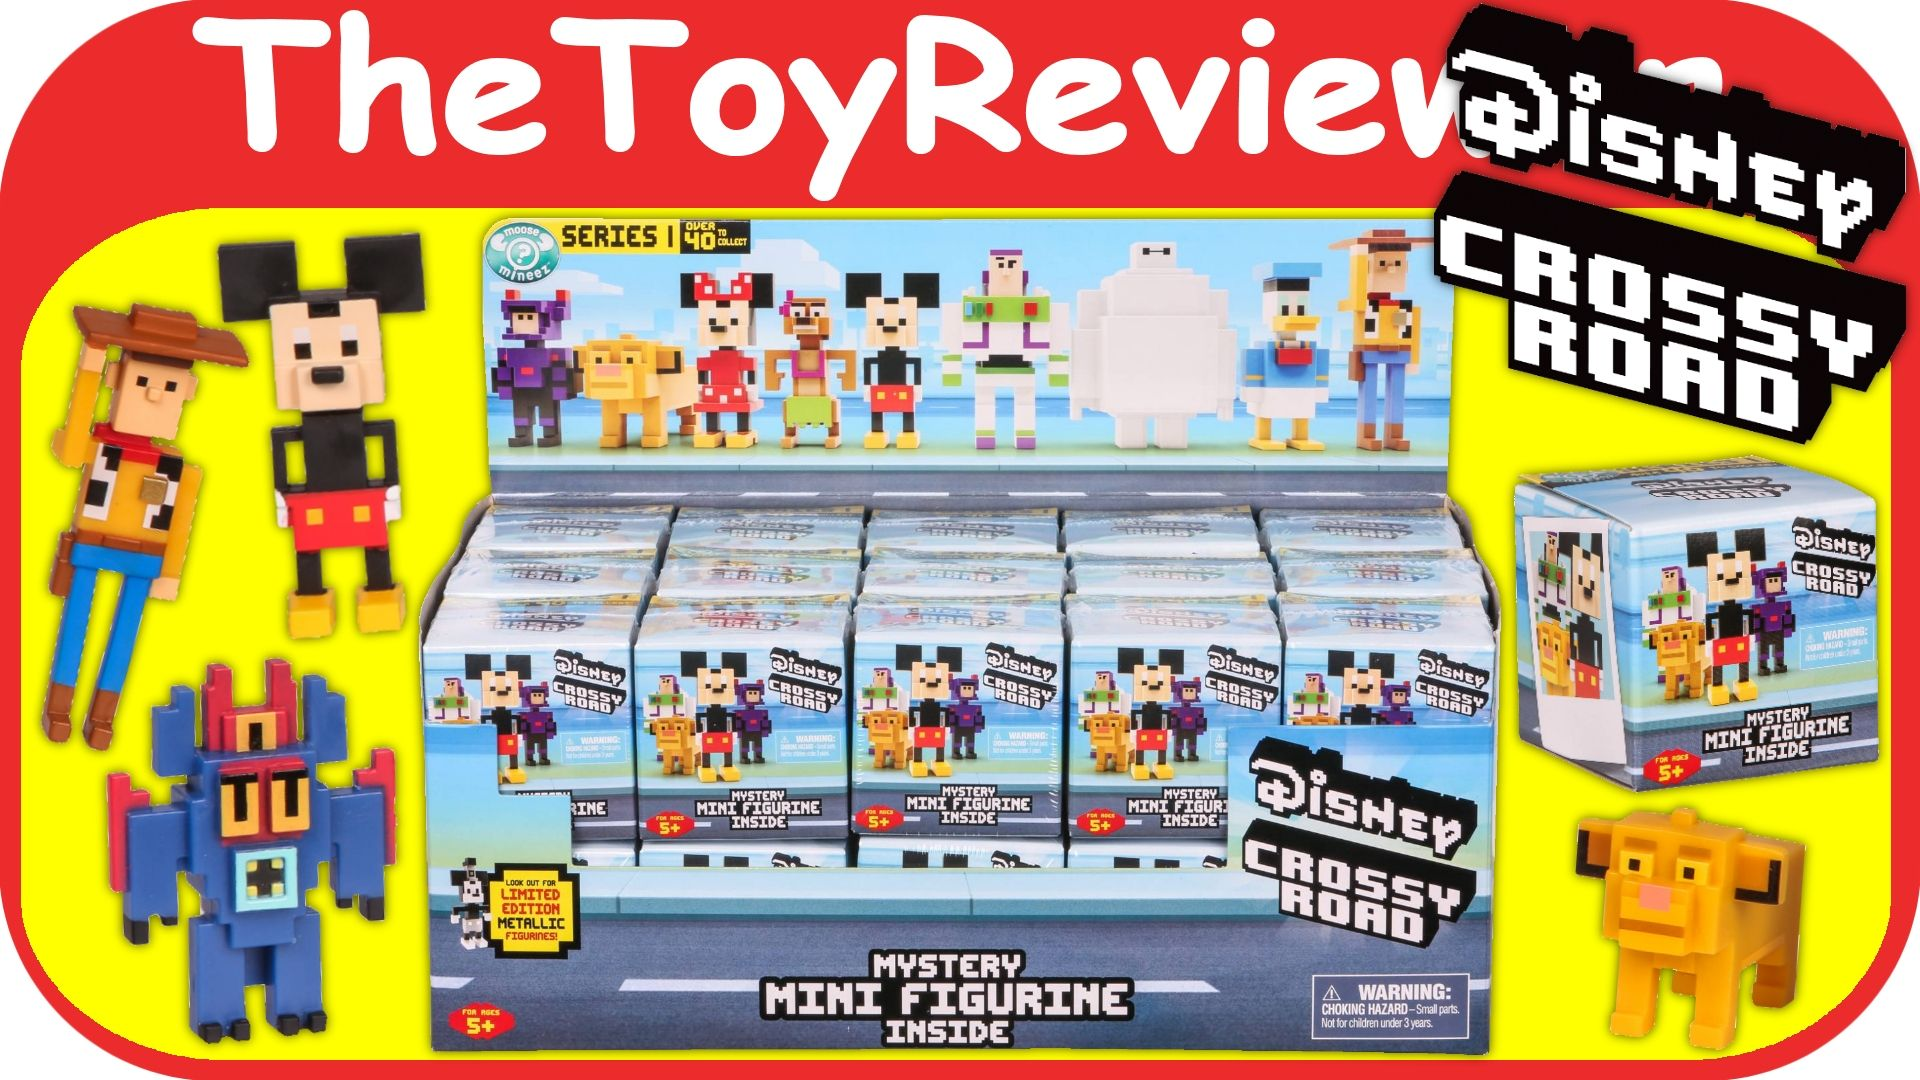 Check out the Full Case of Disney Crossy Road Mystery Mini Figurine Blind Boxes here:  https://www.youtube.com/watch?v=yTB-8o21pwo